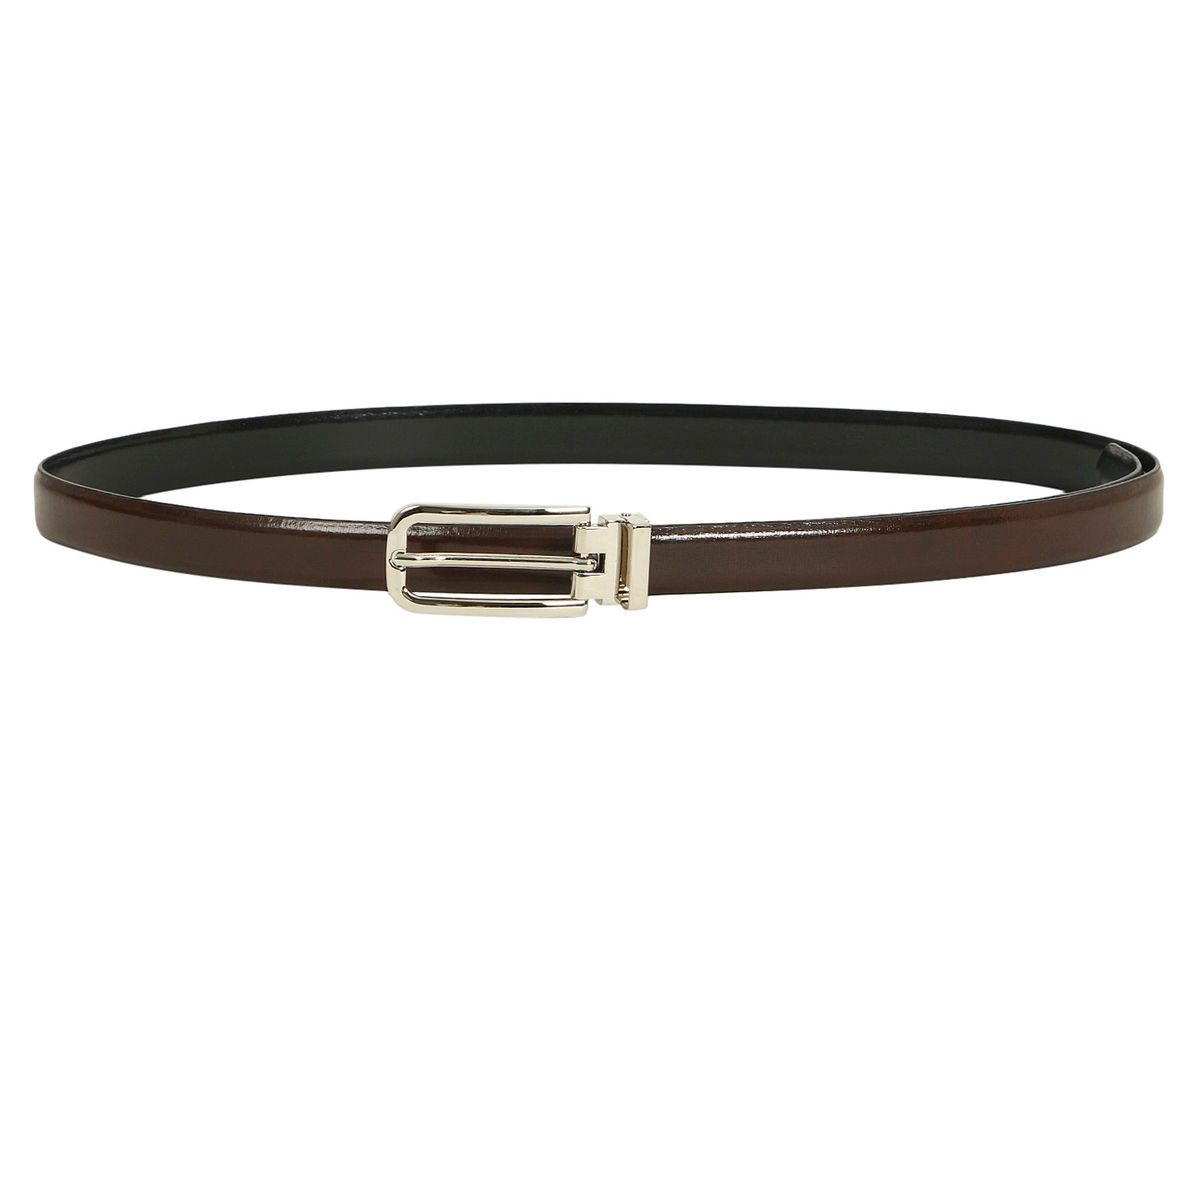 cc0a3b92681e8 Da Milano Brownblack Ladies Belt